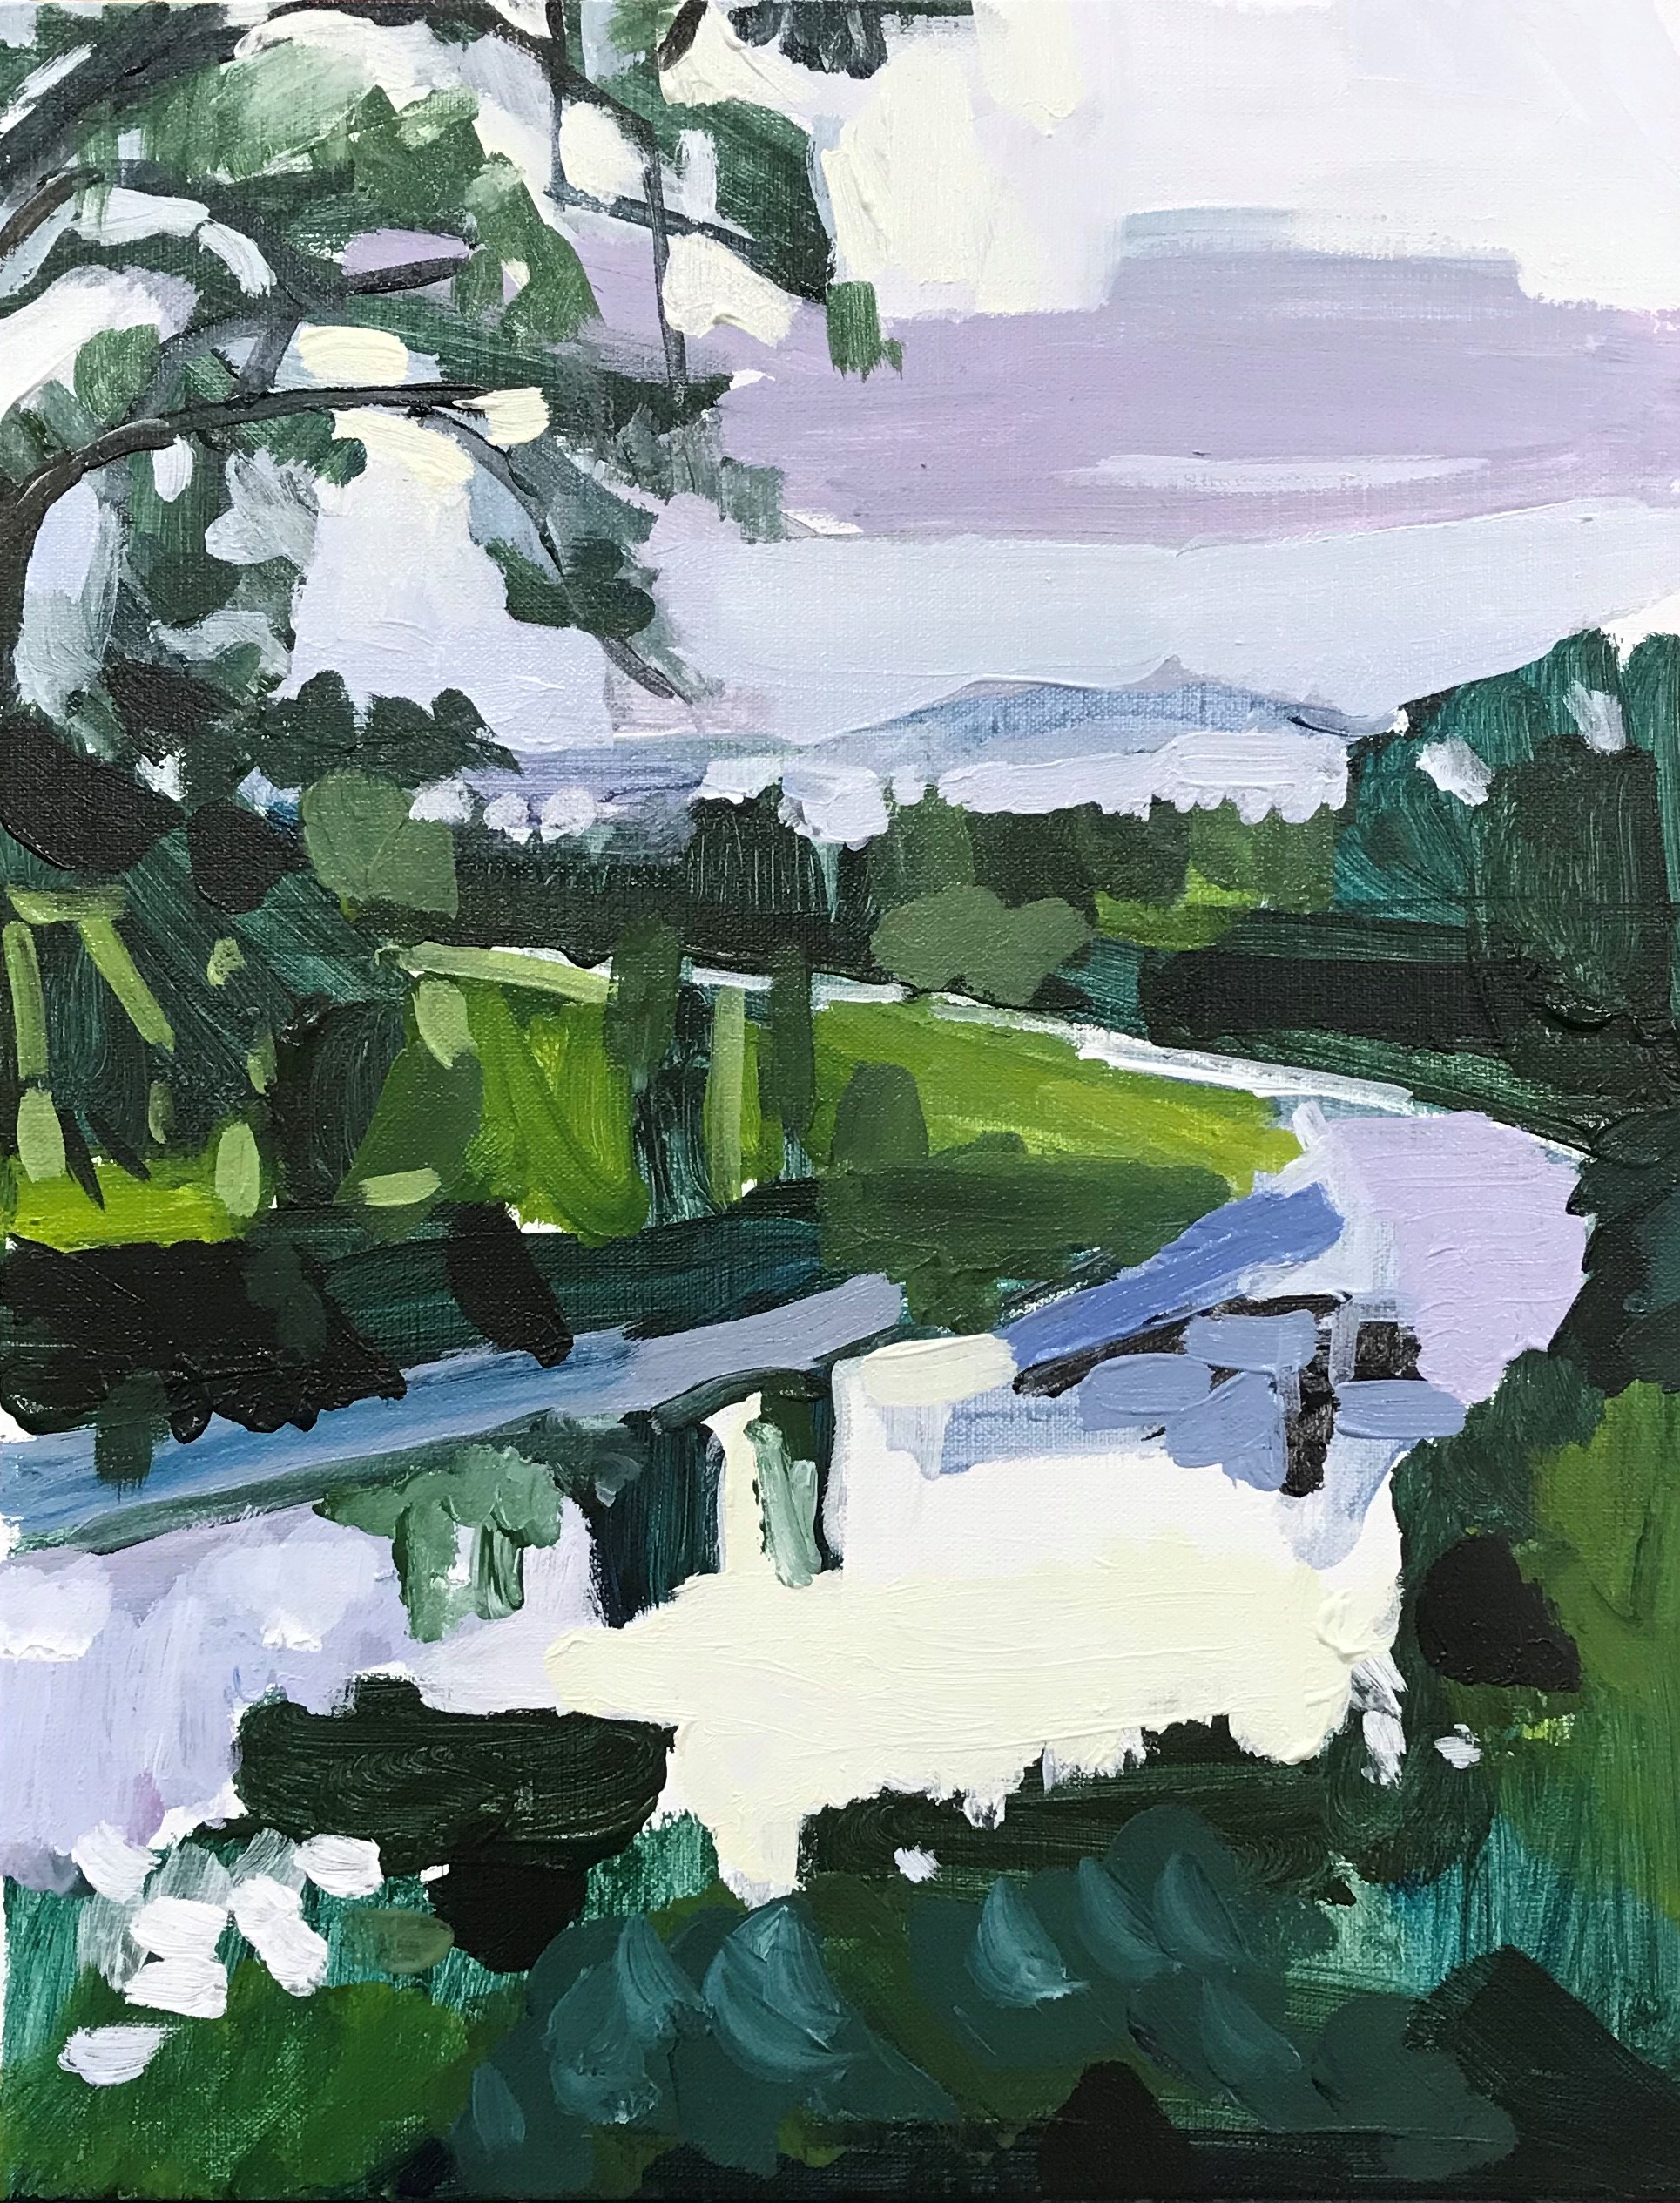 The Course Of The River 36 x 46cm acrylic on canvas 2019